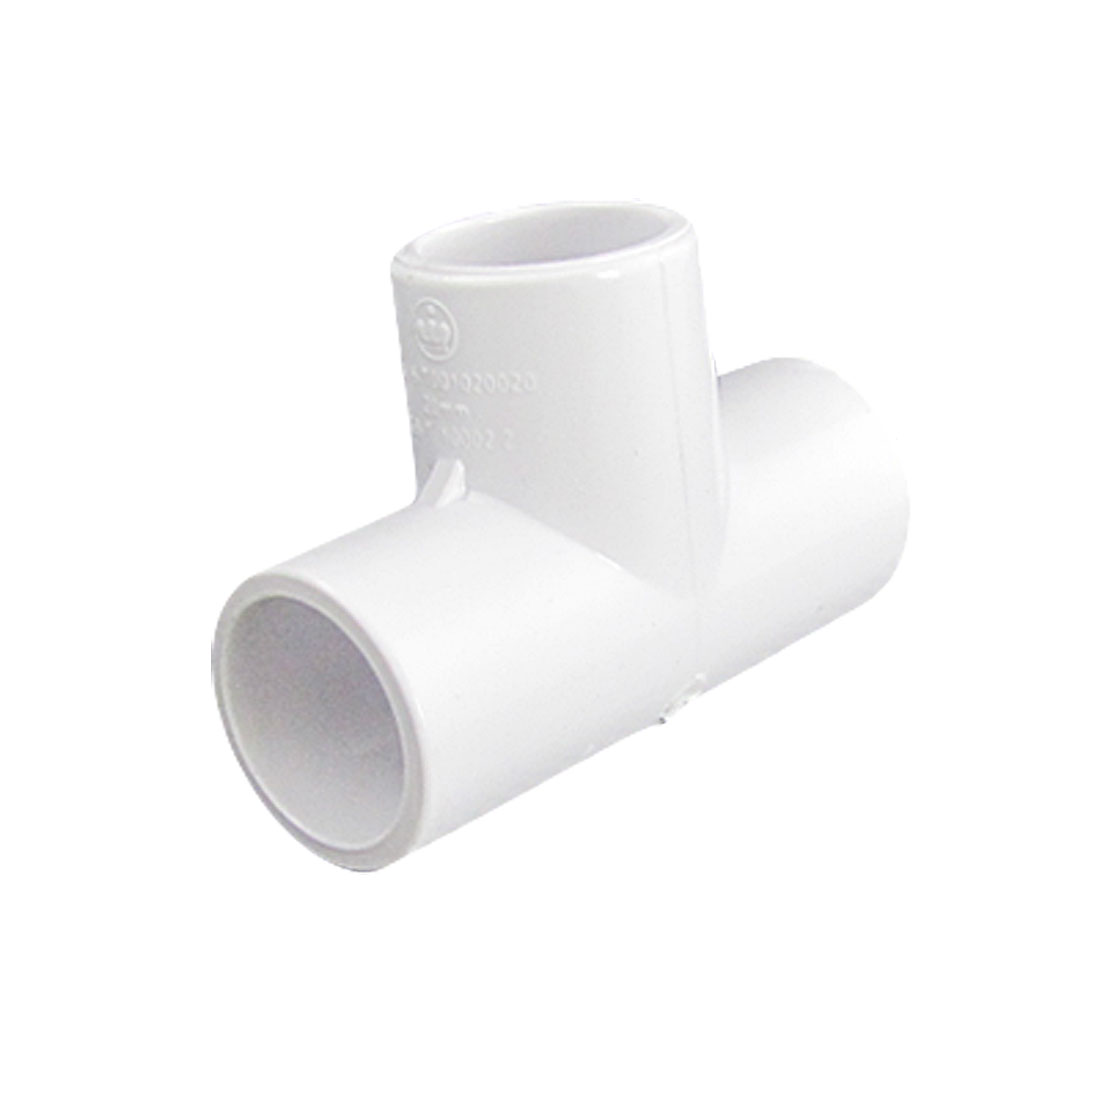 PVC-U-20mm-Drinking-Water-Pipe-Tee-Adapter-Connector